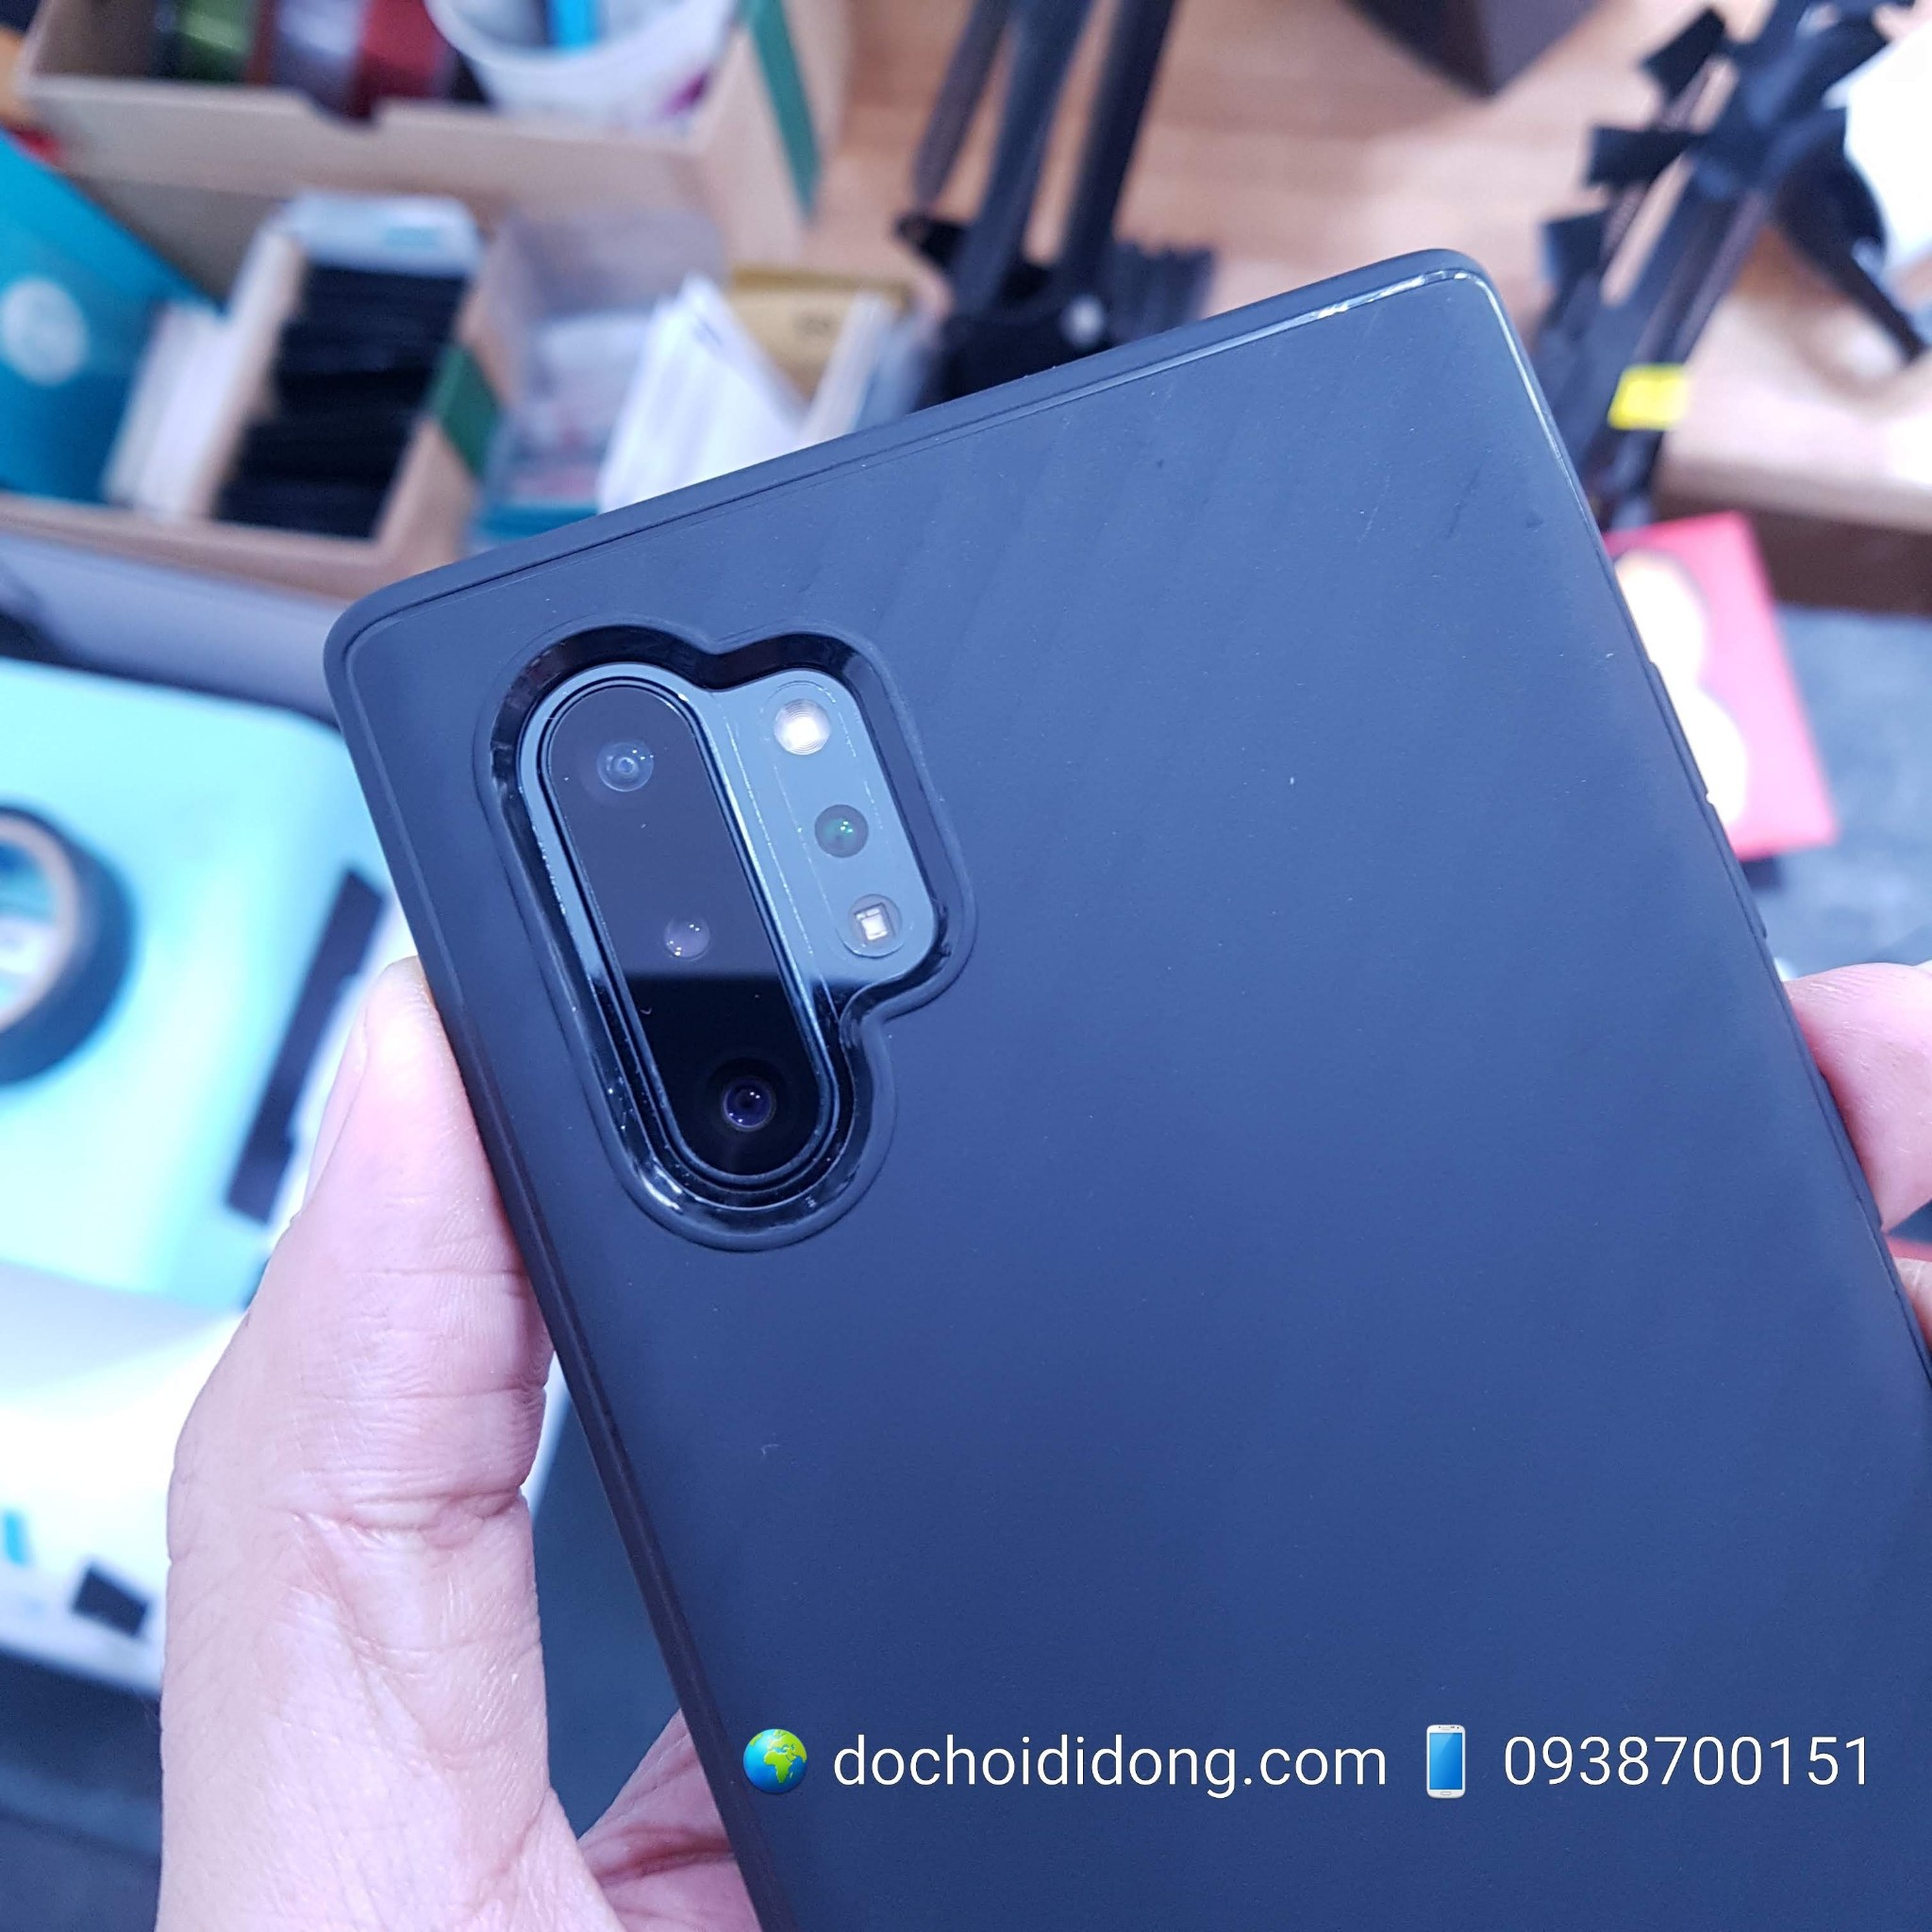 op-lung-samsung-galaxy-note-10-plus-spigen-core-armor-chong-soc